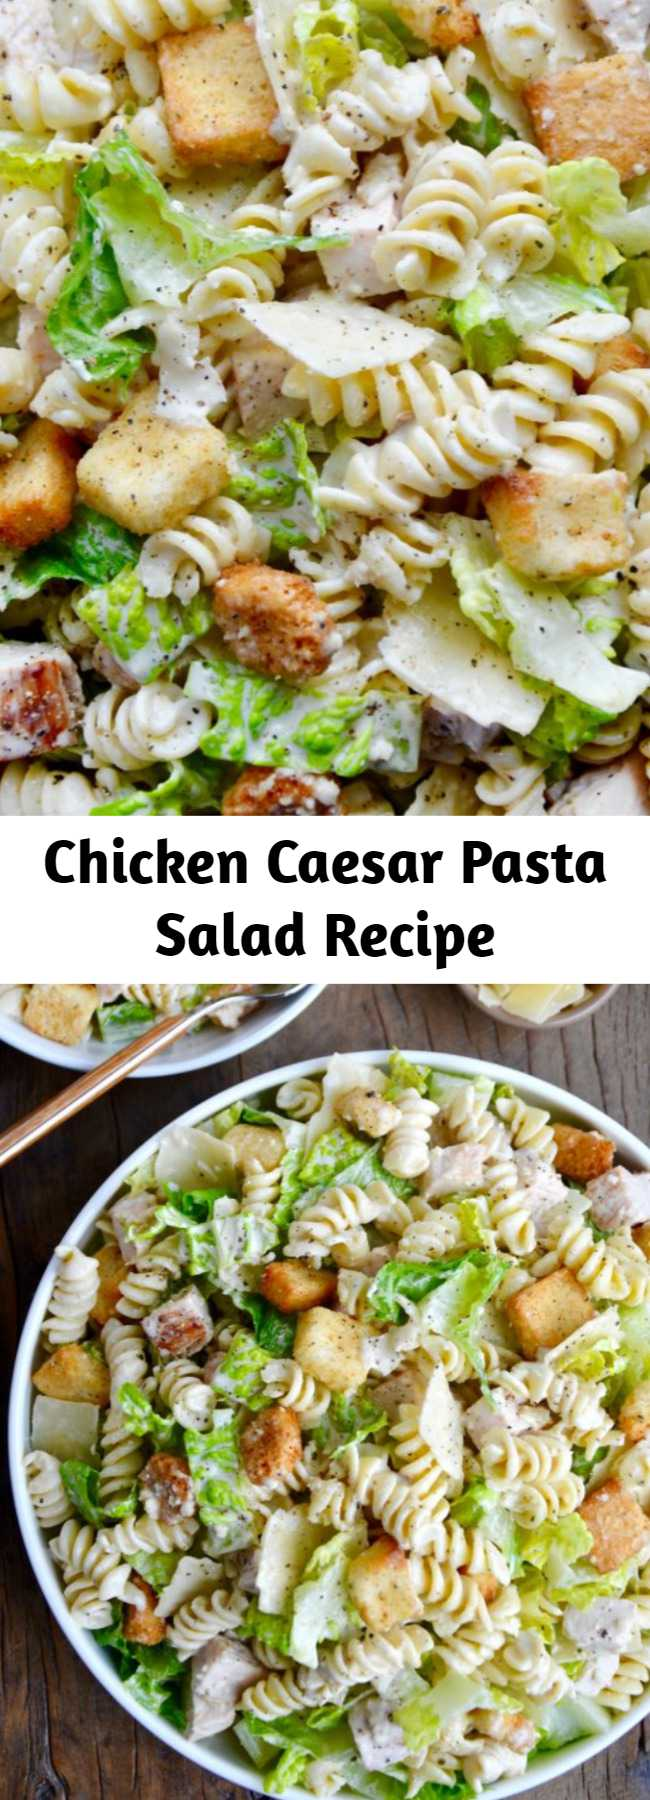 Chicken Caesar Pasta Salad Recipe - Whip up a 20-minute meal in-a-bowl with a refreshing recipe for Chicken Caesar Pasta Salad starring DIY dressing. #recipes #chickencaesar #pastasalad #picnicfoodideas #20minuterecipe #food